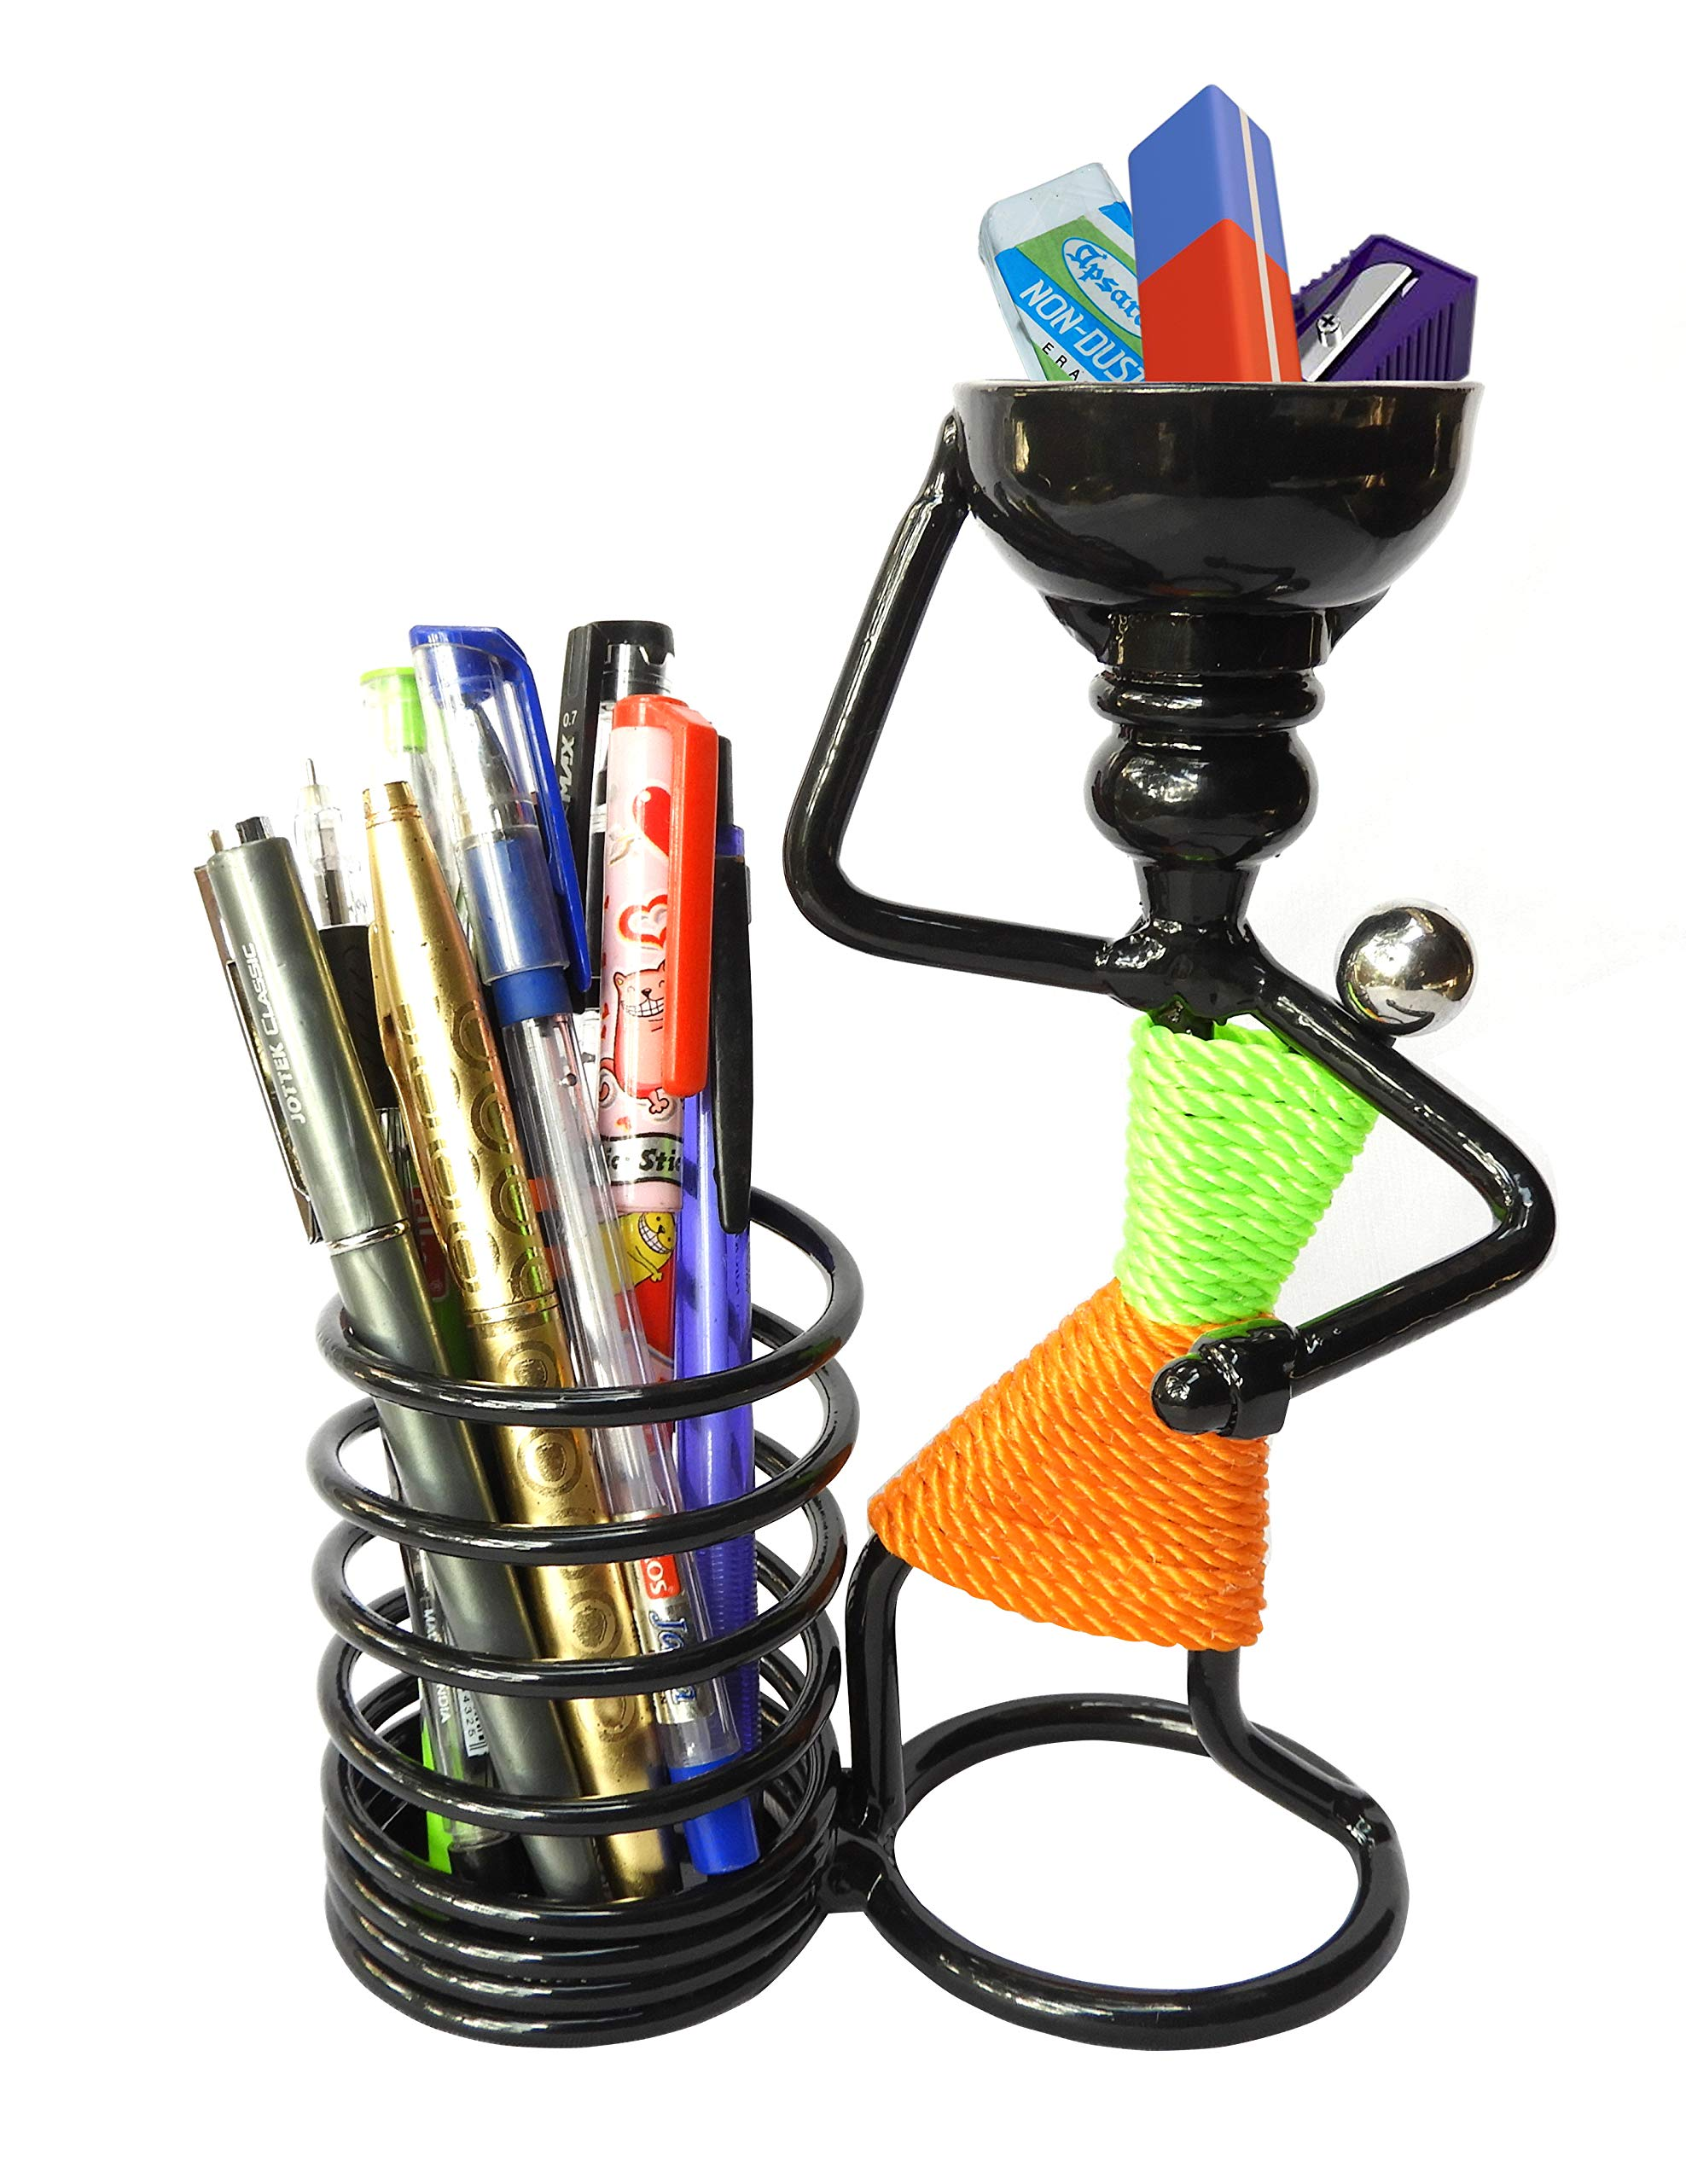 ORCHID ENGINEERS Love Pen Stand Organizer (Multicolor) product image